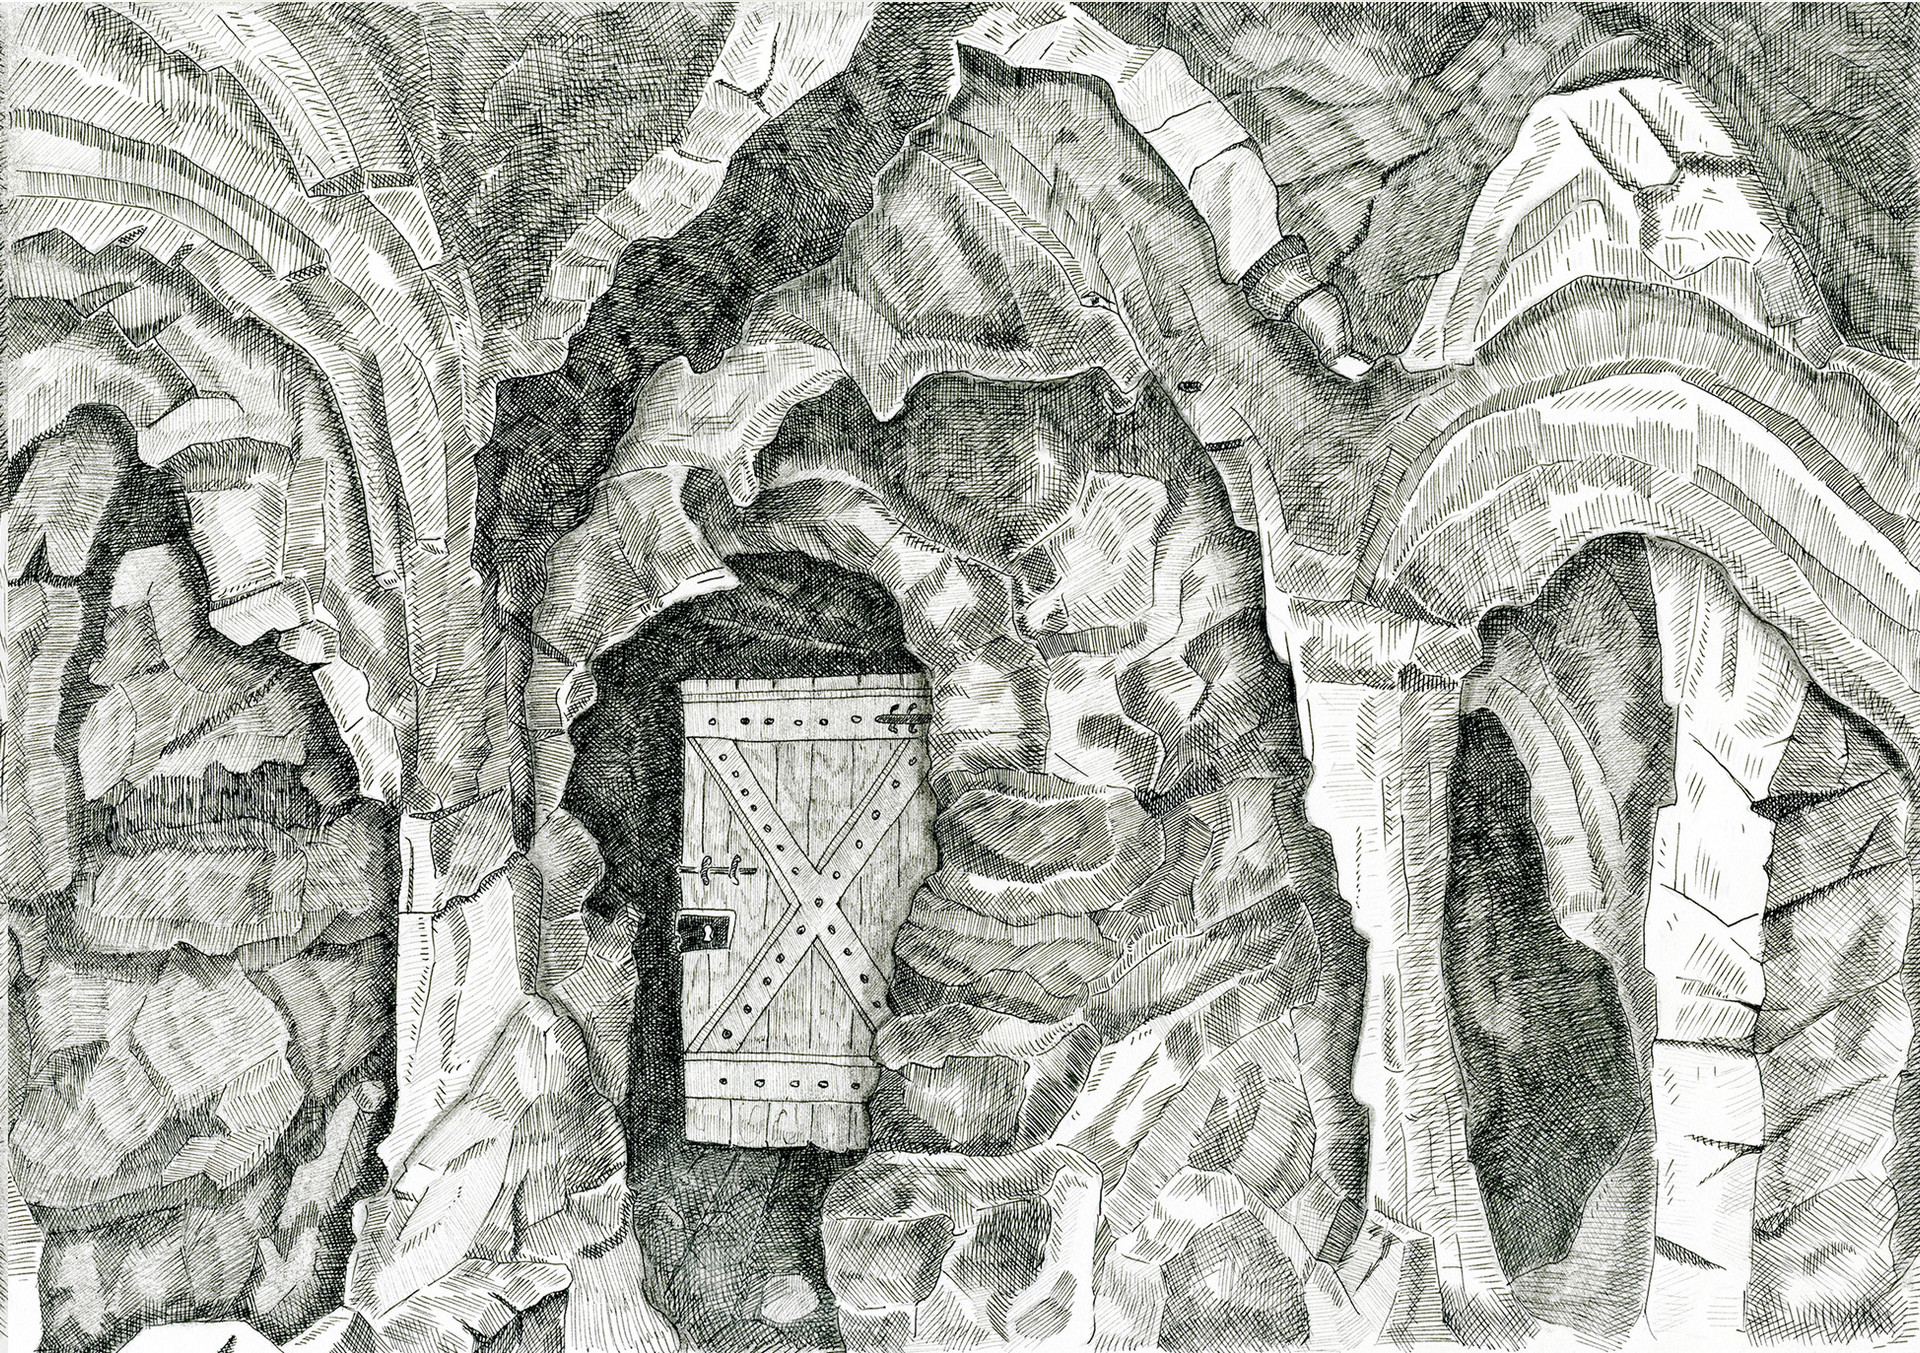 Caves with Door, 2015. Ink pen and pencil on paper, 21 × 29.7 cm